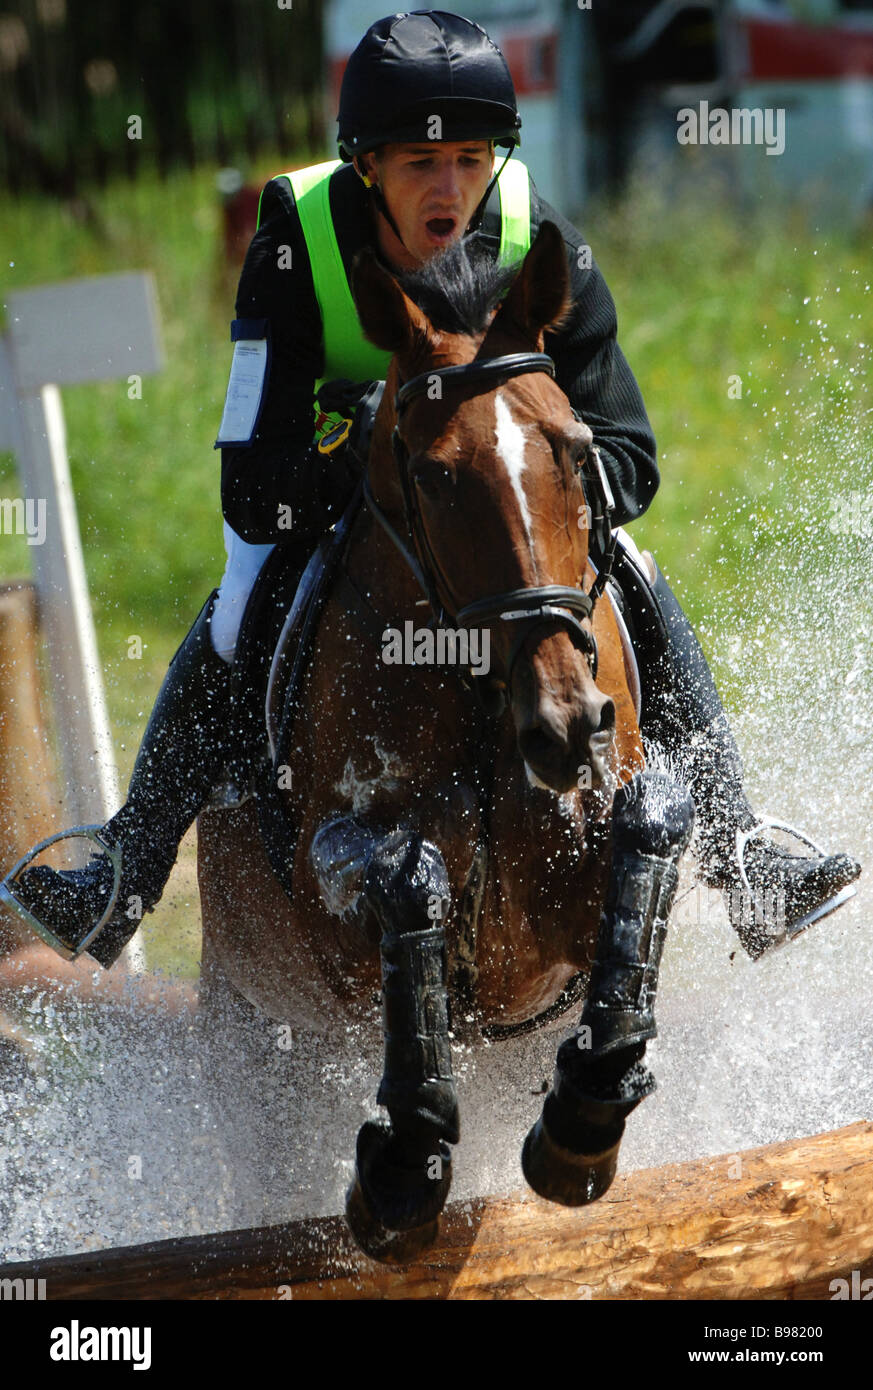 The Eventing World Cup at the Planernaya sports center in the Moscow Region - Stock Image